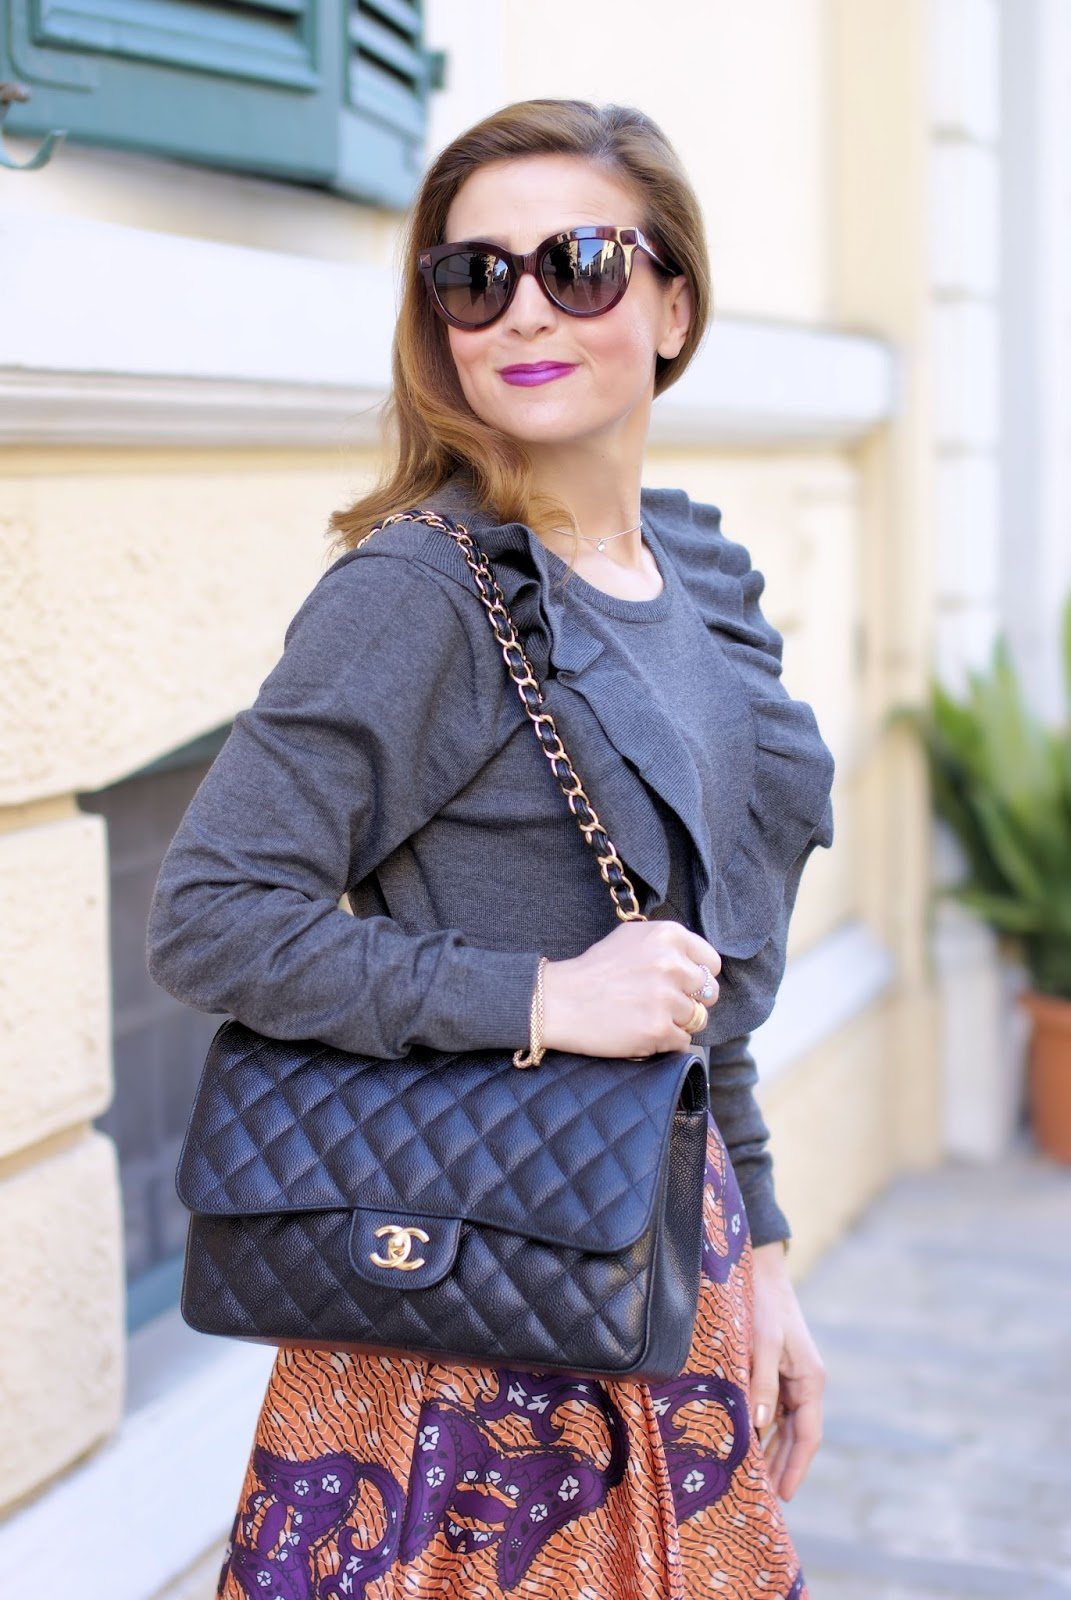 Chanel 2.55 bag on Fashion and Cookies fashion blog, fashion blogger style